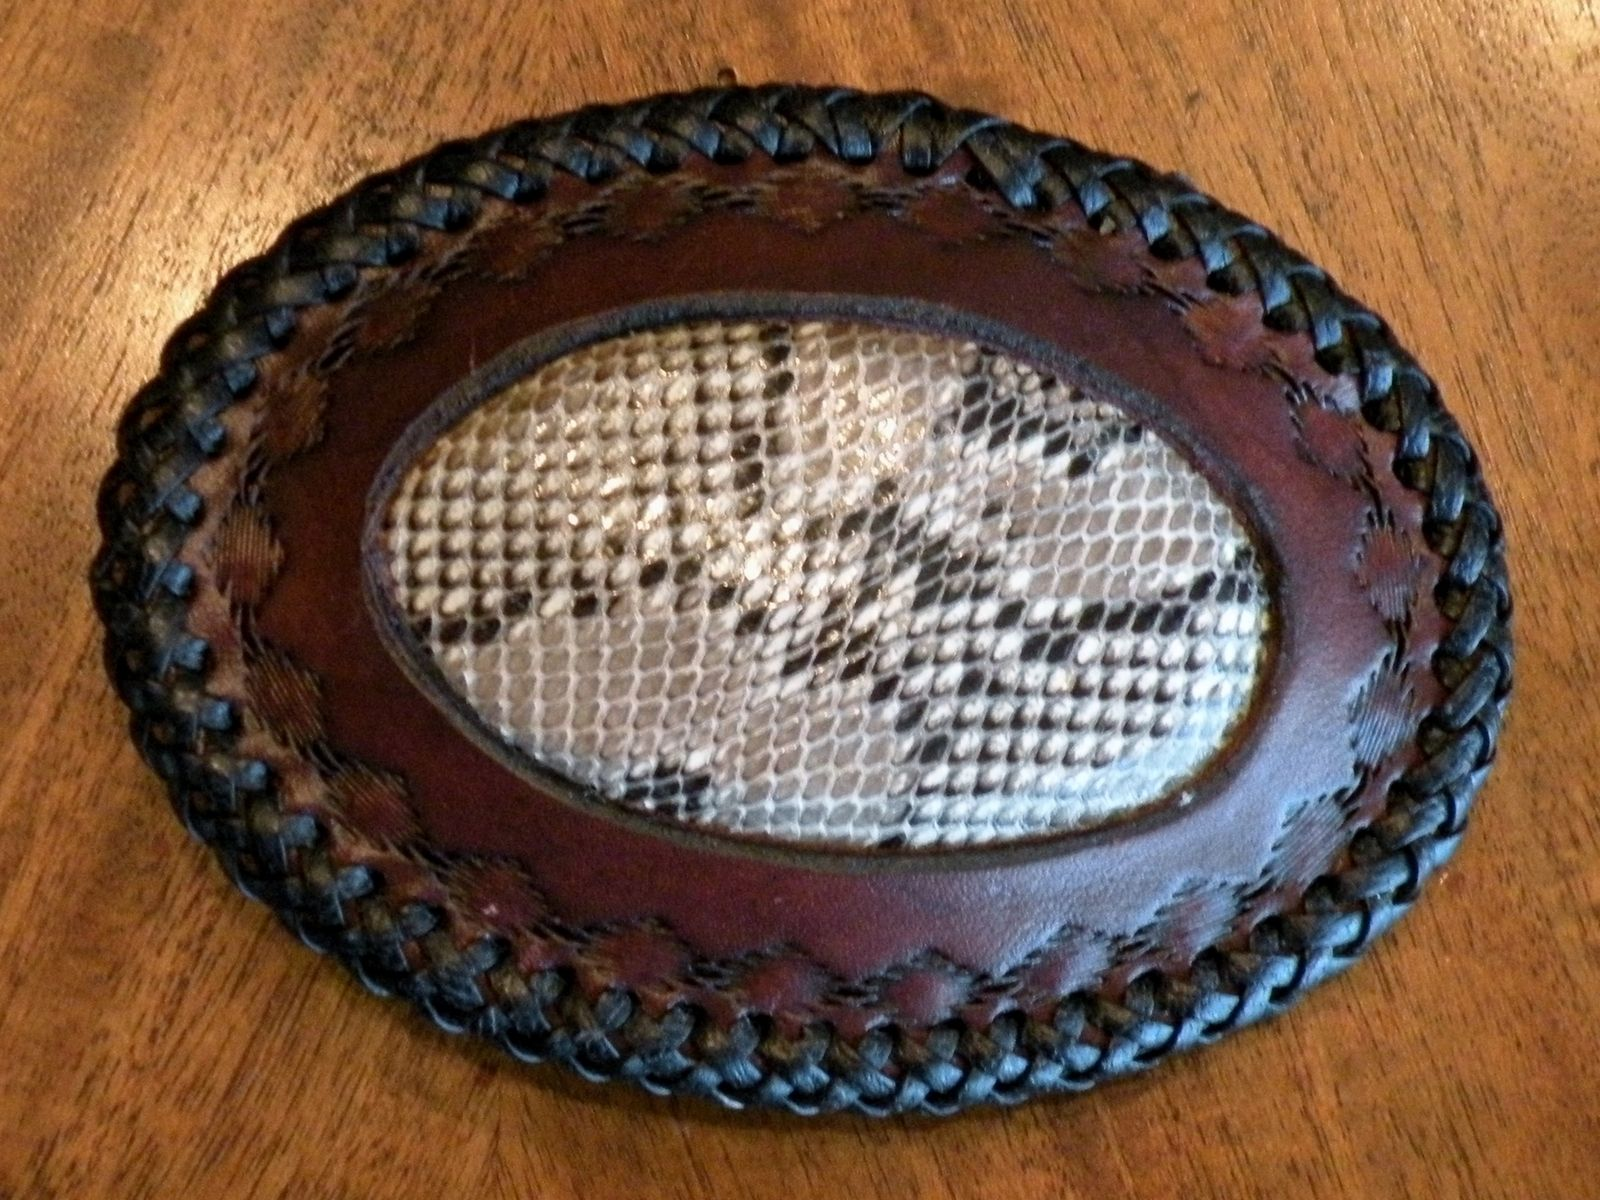 crafted python skin inlay belt buckle by rics leather